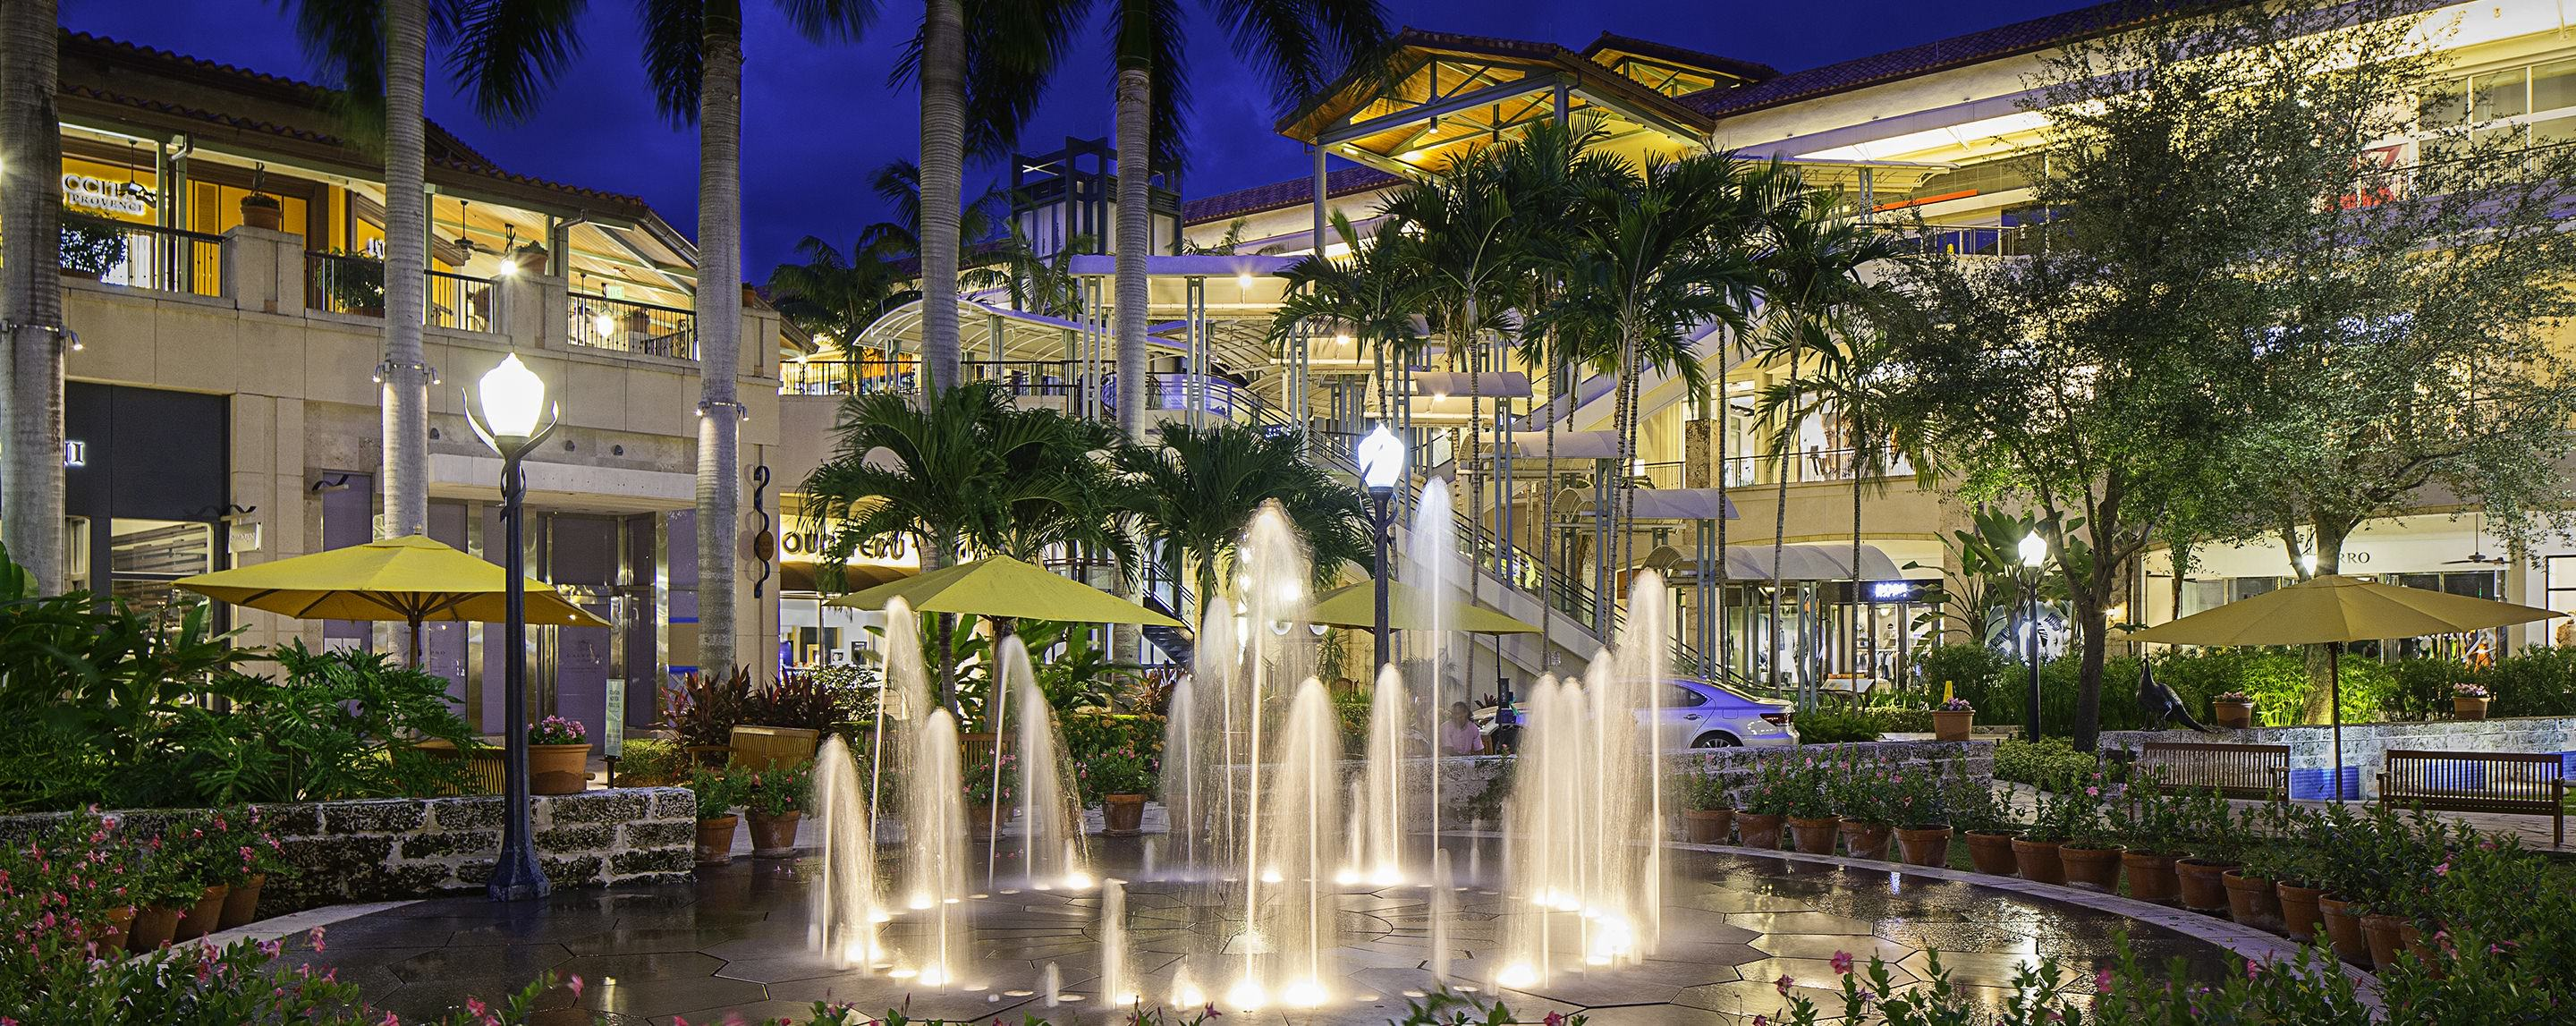 At night, a property is beautifully lit up in a store front lined outdoor walkway decorated with fountains and trees.